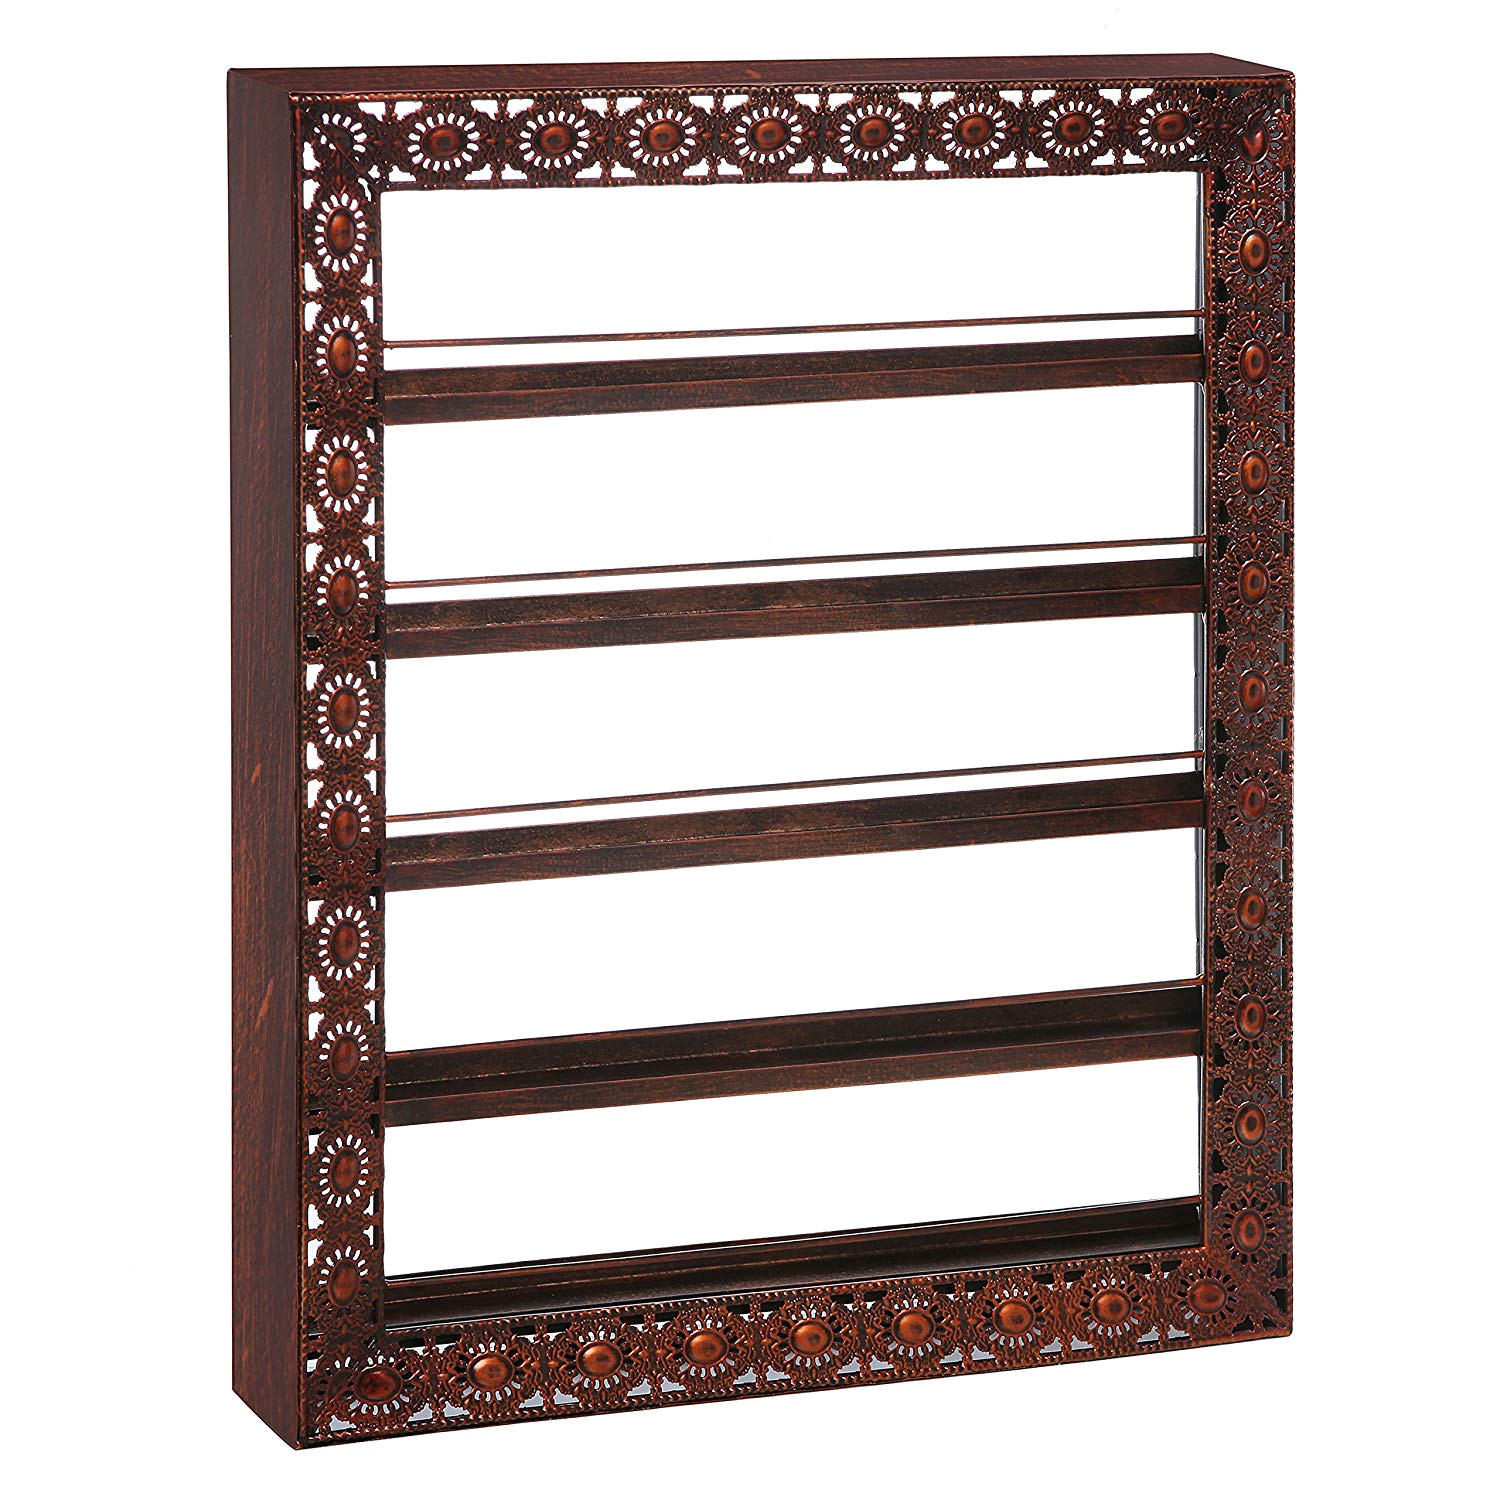 amazon com mygift salon vintage wall mounted 5 tier metal nail polish cosmetic organizer display rack bronze home kitchen